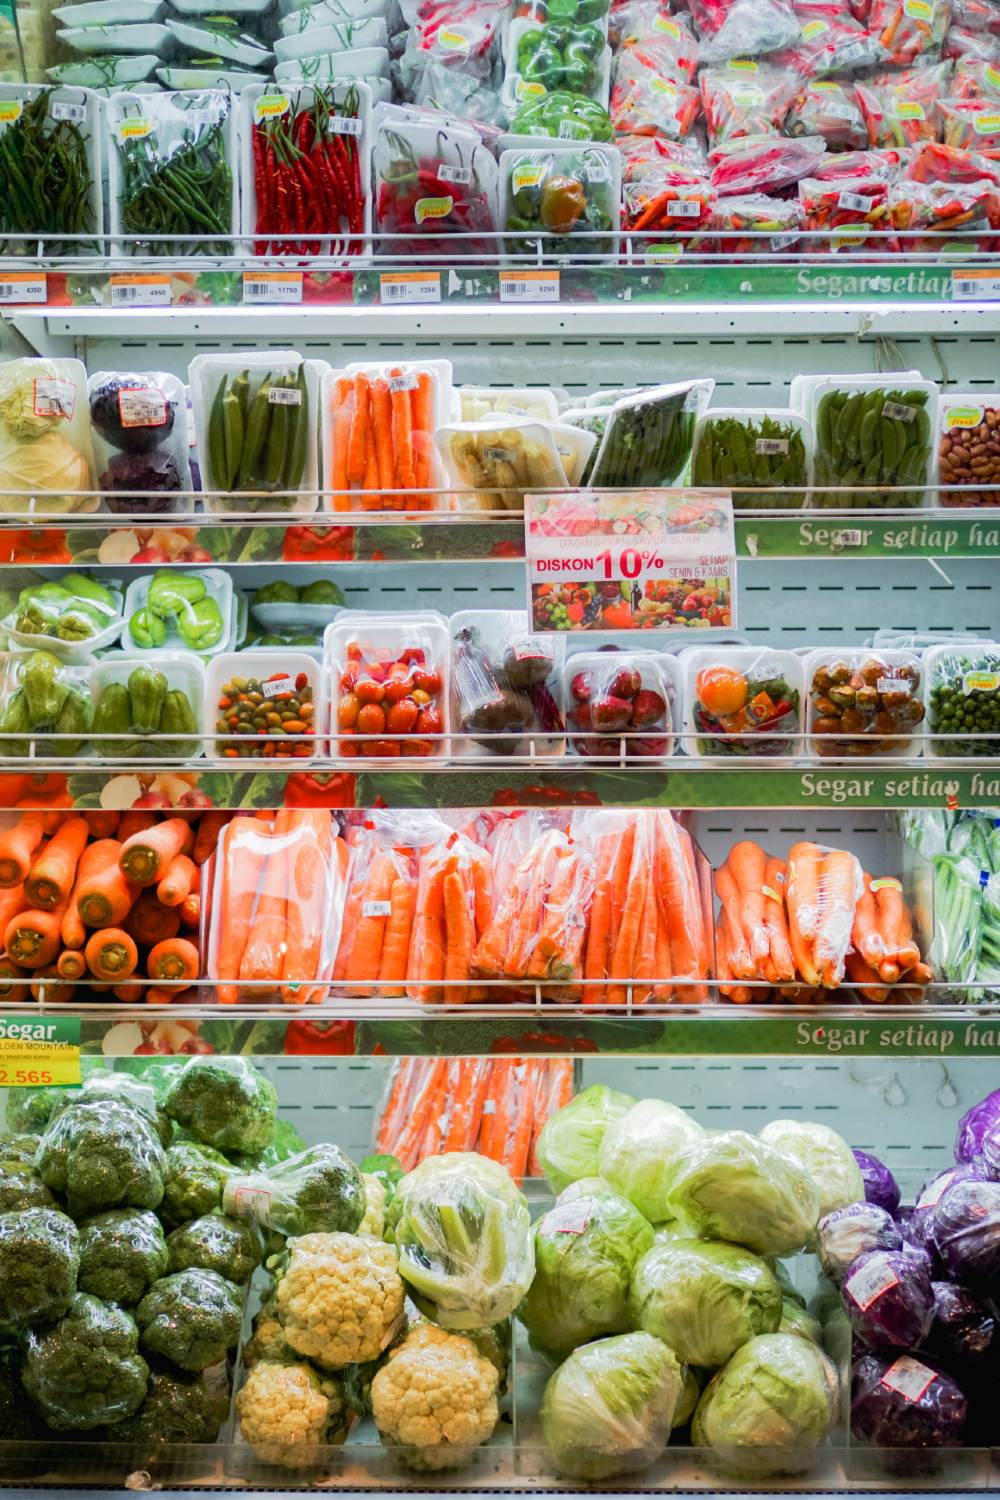 Grocery Store Lesson in Other Countries | Packaged Food